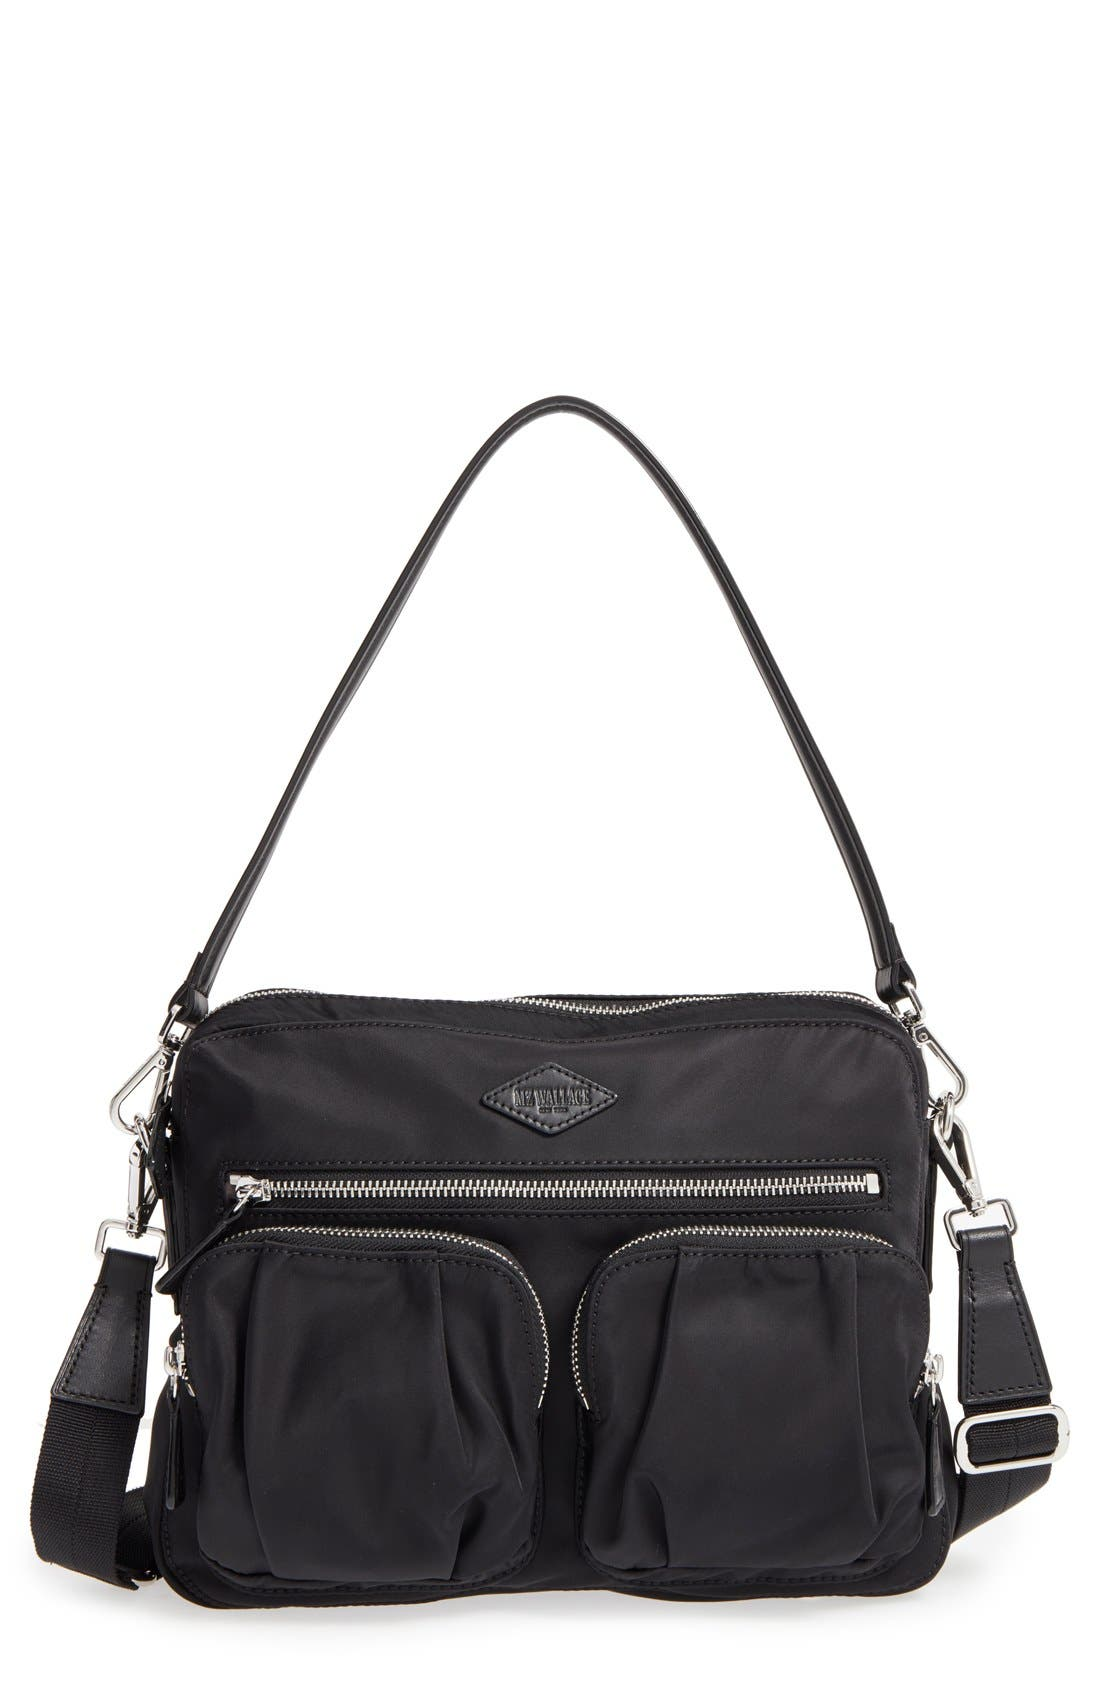 Small Shoulder Bags | Nordstrom